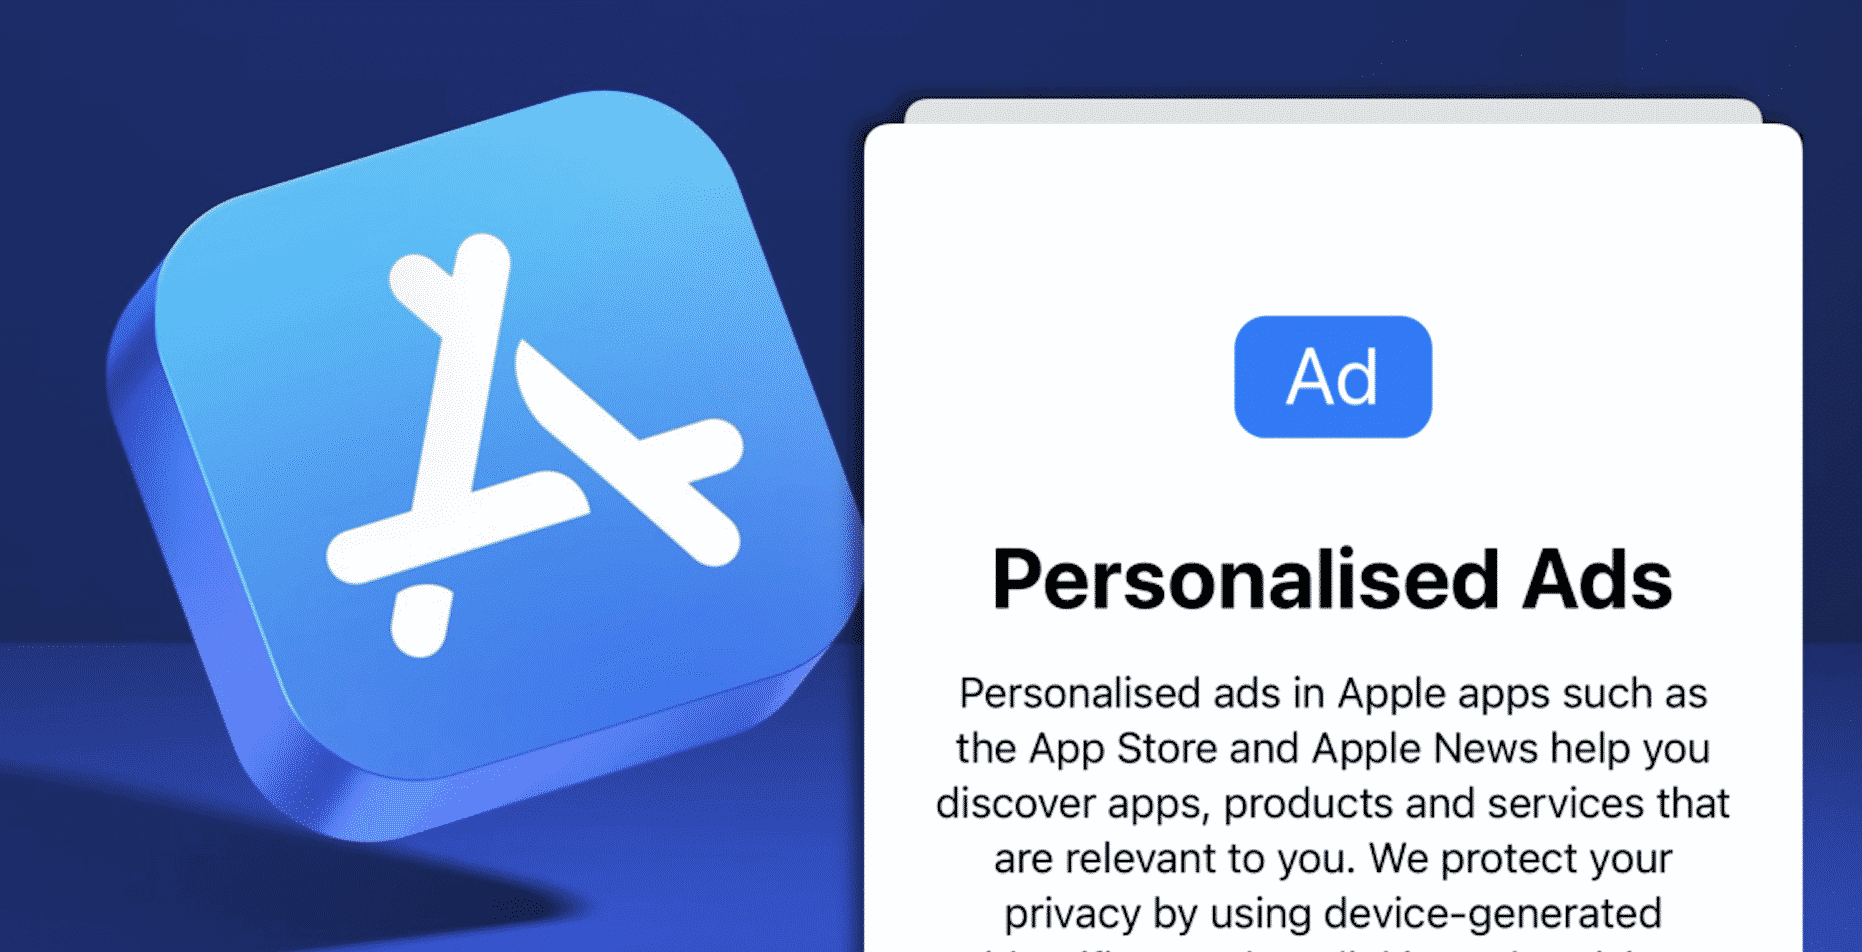 Personalized Ads toggle